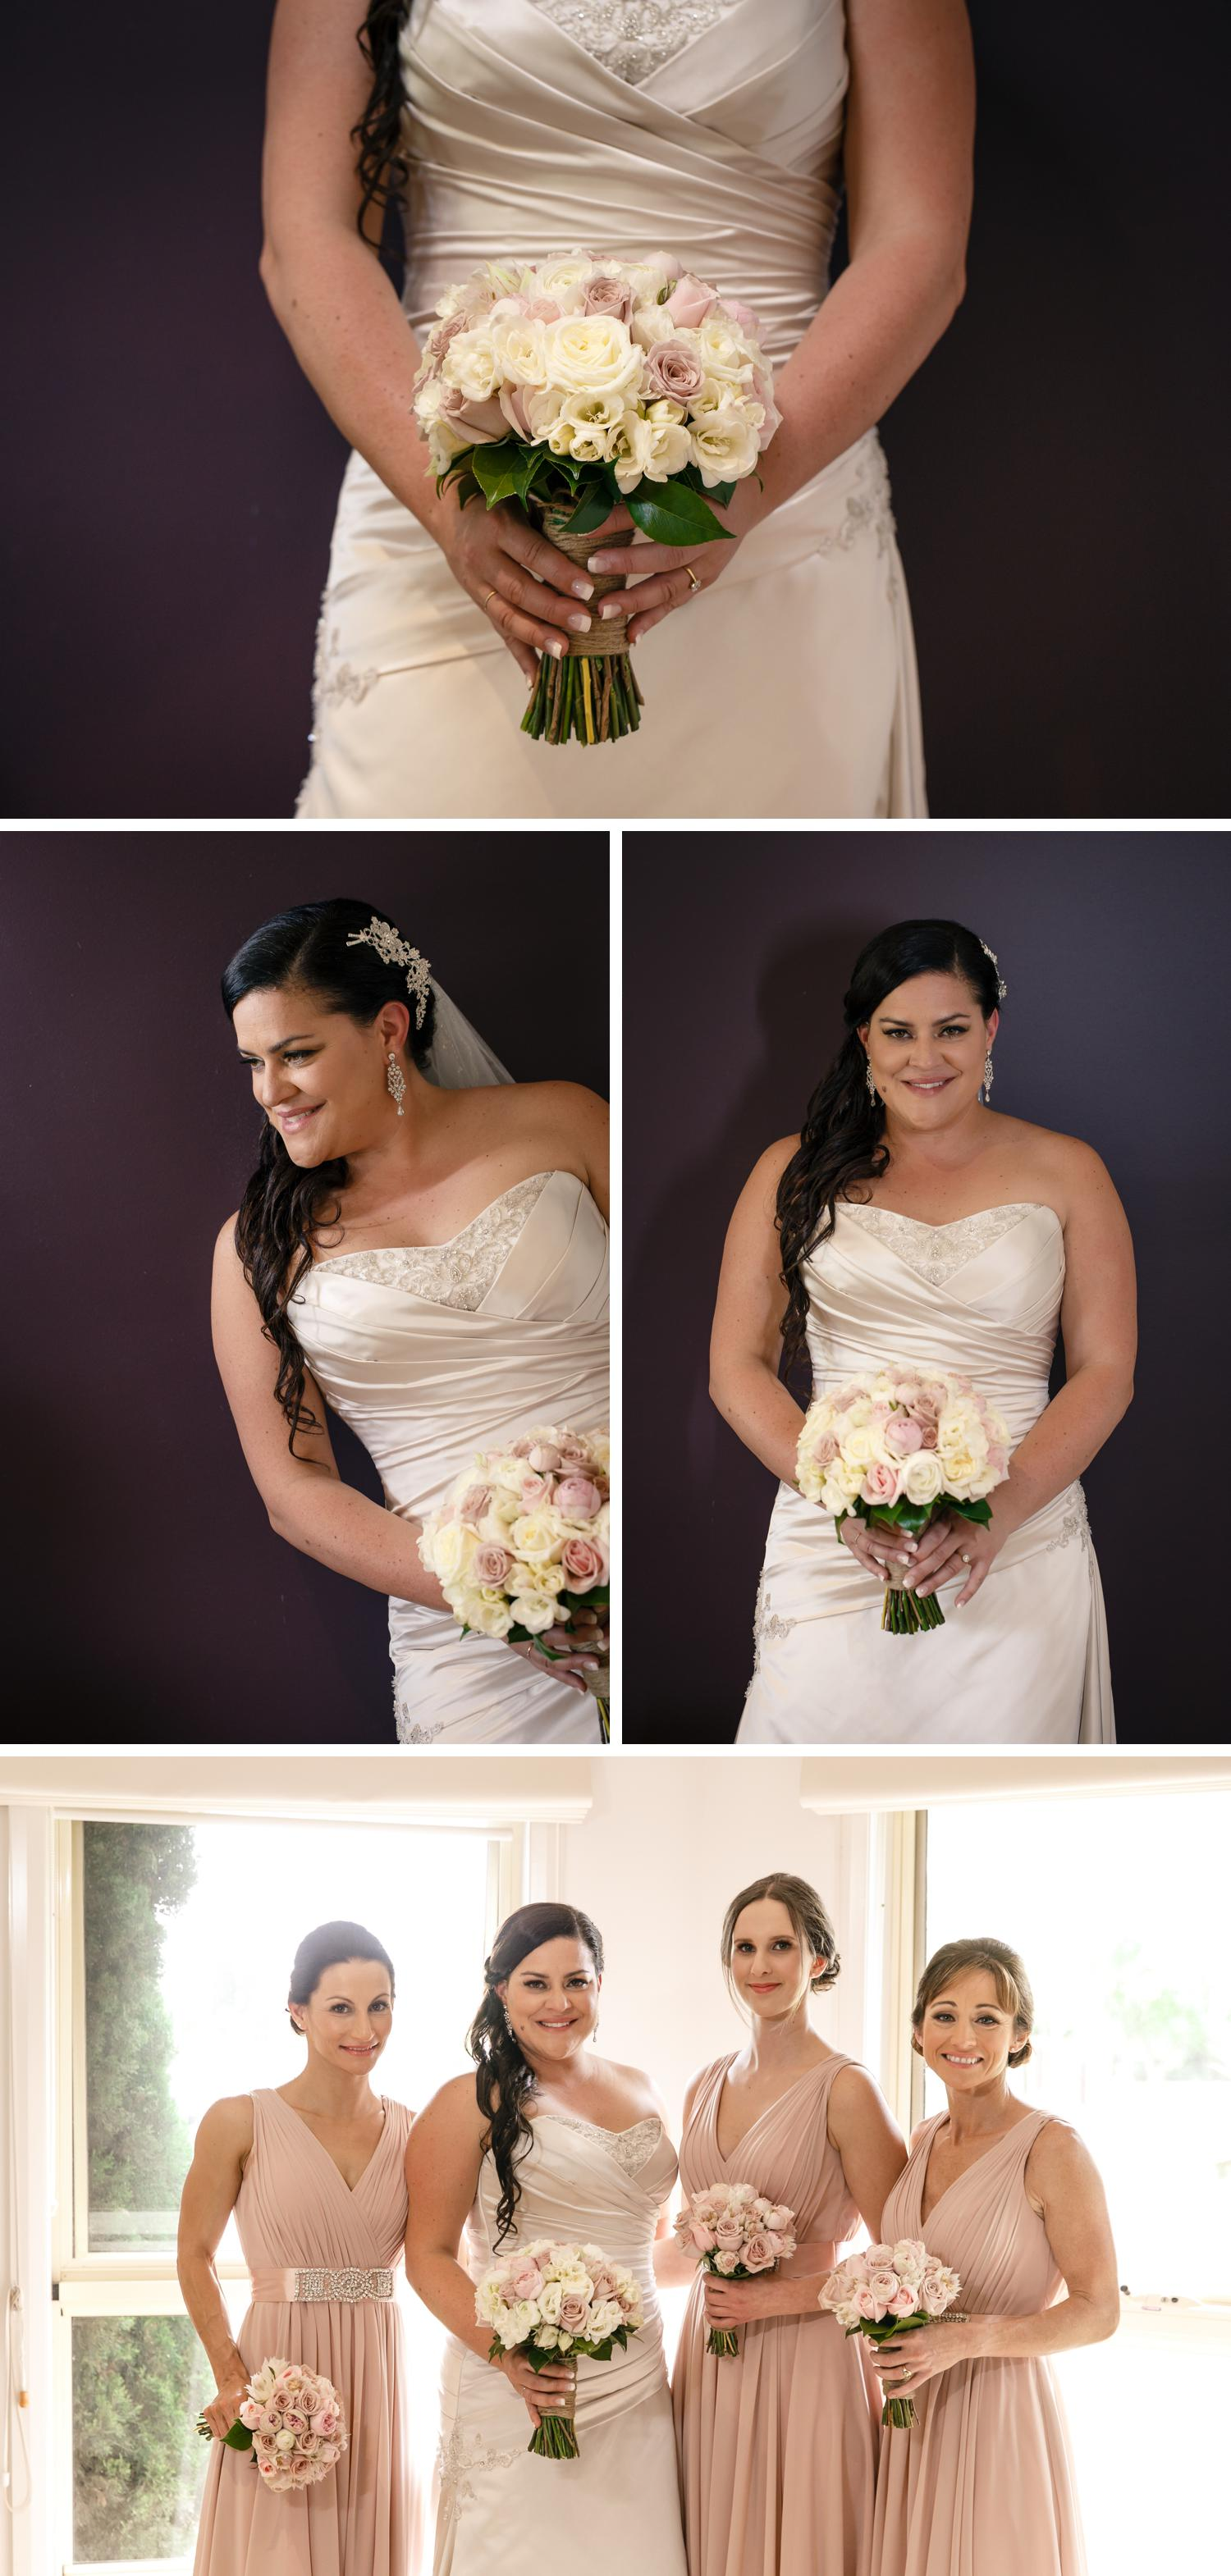 Traralgon Gippsland Wedding, Bride Getting Ready, Beautiful Wedding Dress Photo, Small Wedding Details by Danae Studios